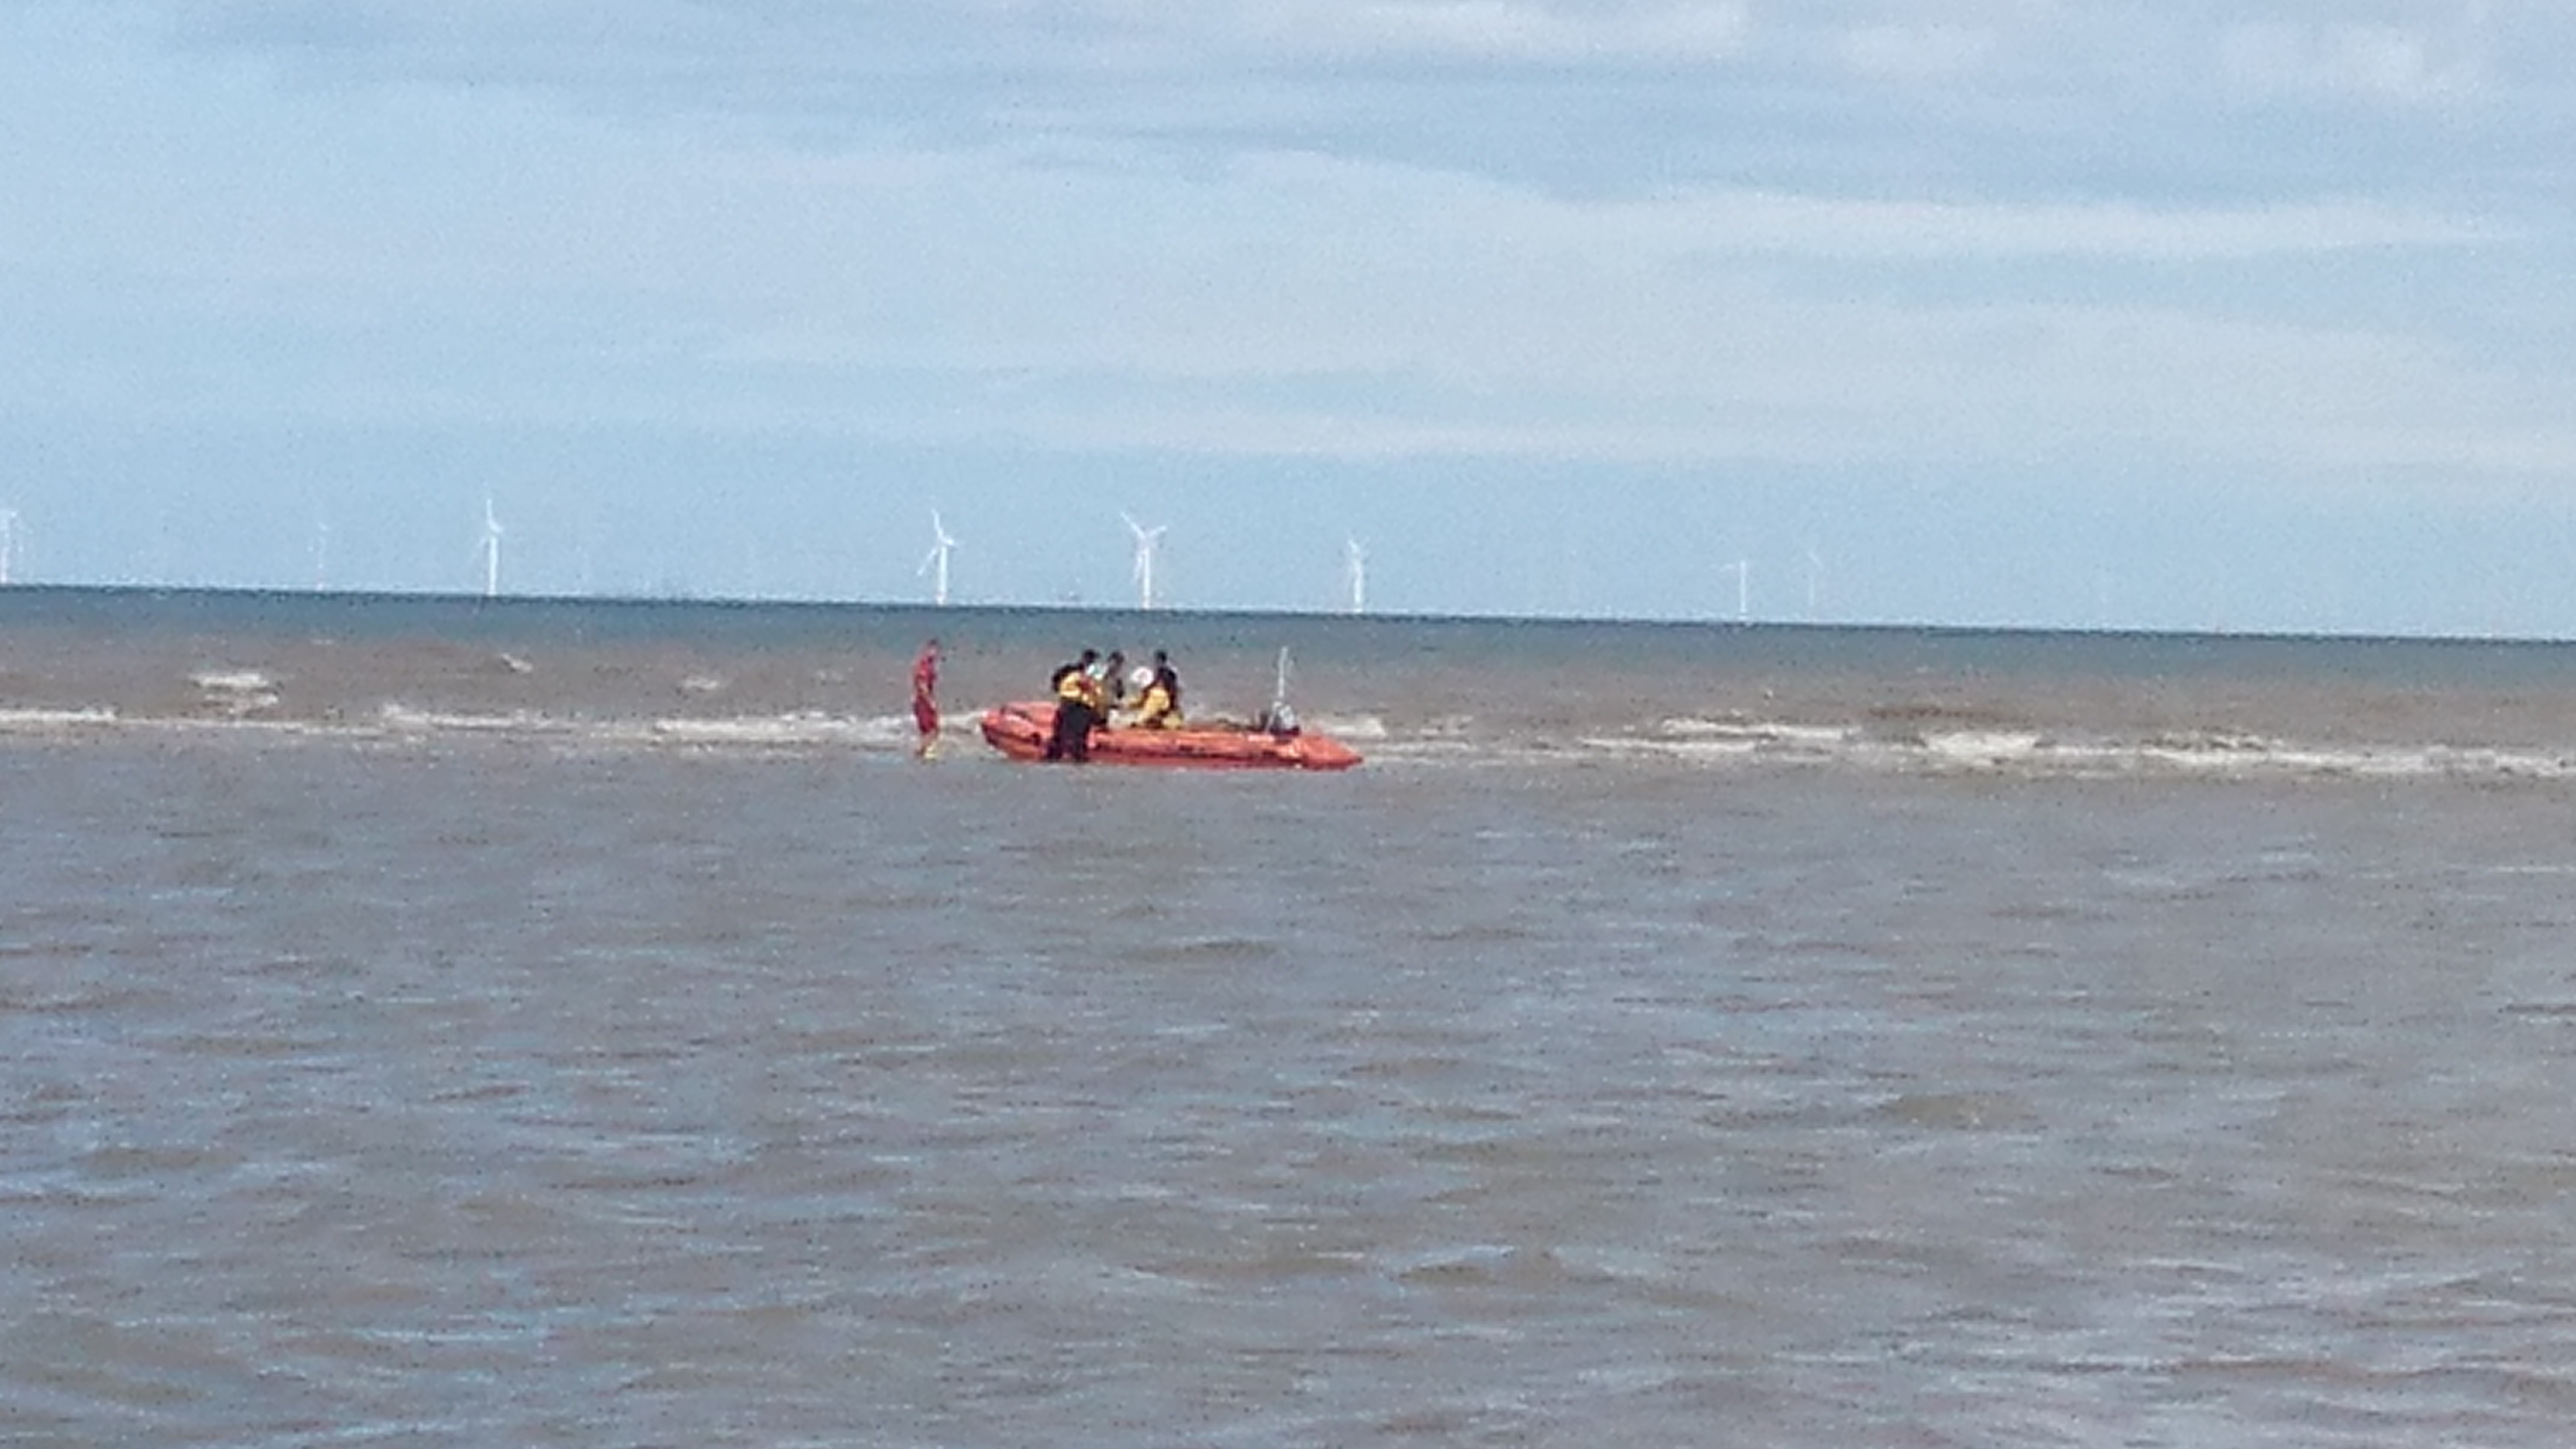 Rhyl inshore lifeboat and lifeguard get 3 youths on to boat from sandbank.